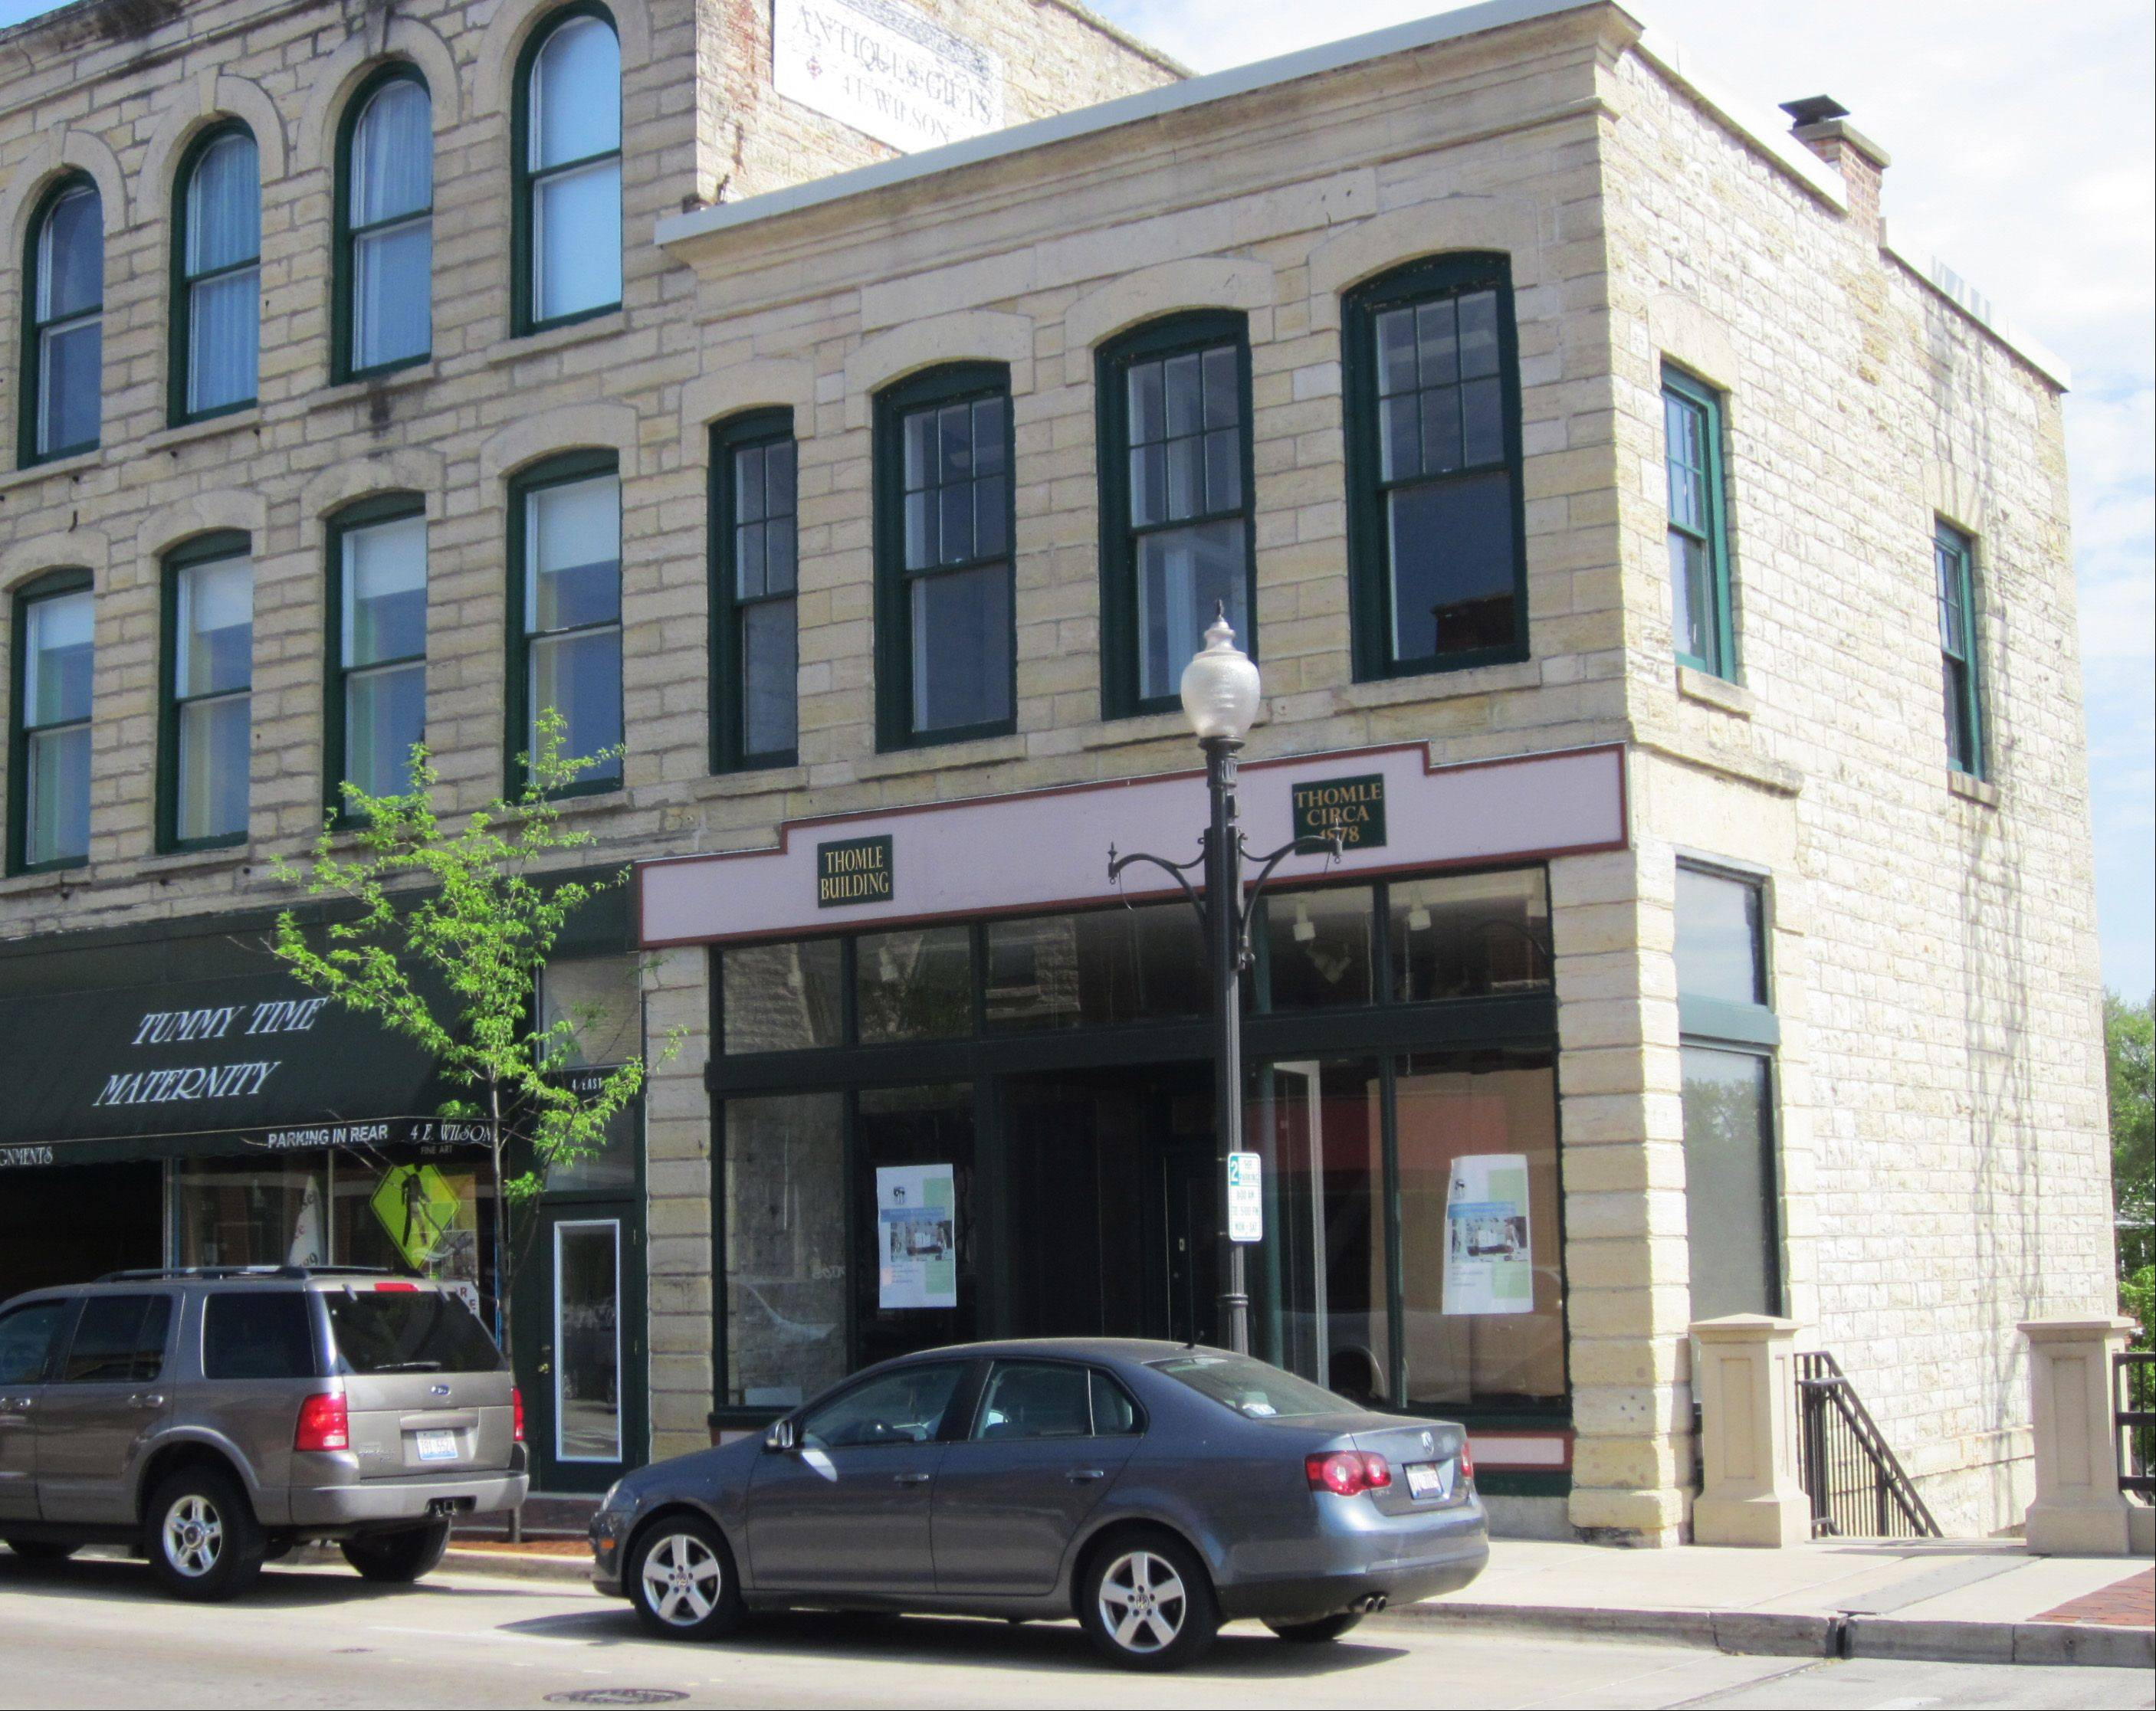 Batavia aldermen are considering two proposals to sell the Thomle Building at 2 E. Wilson St. One is for a martini lounge and business incubator, the other for a restaurant with apartments above.